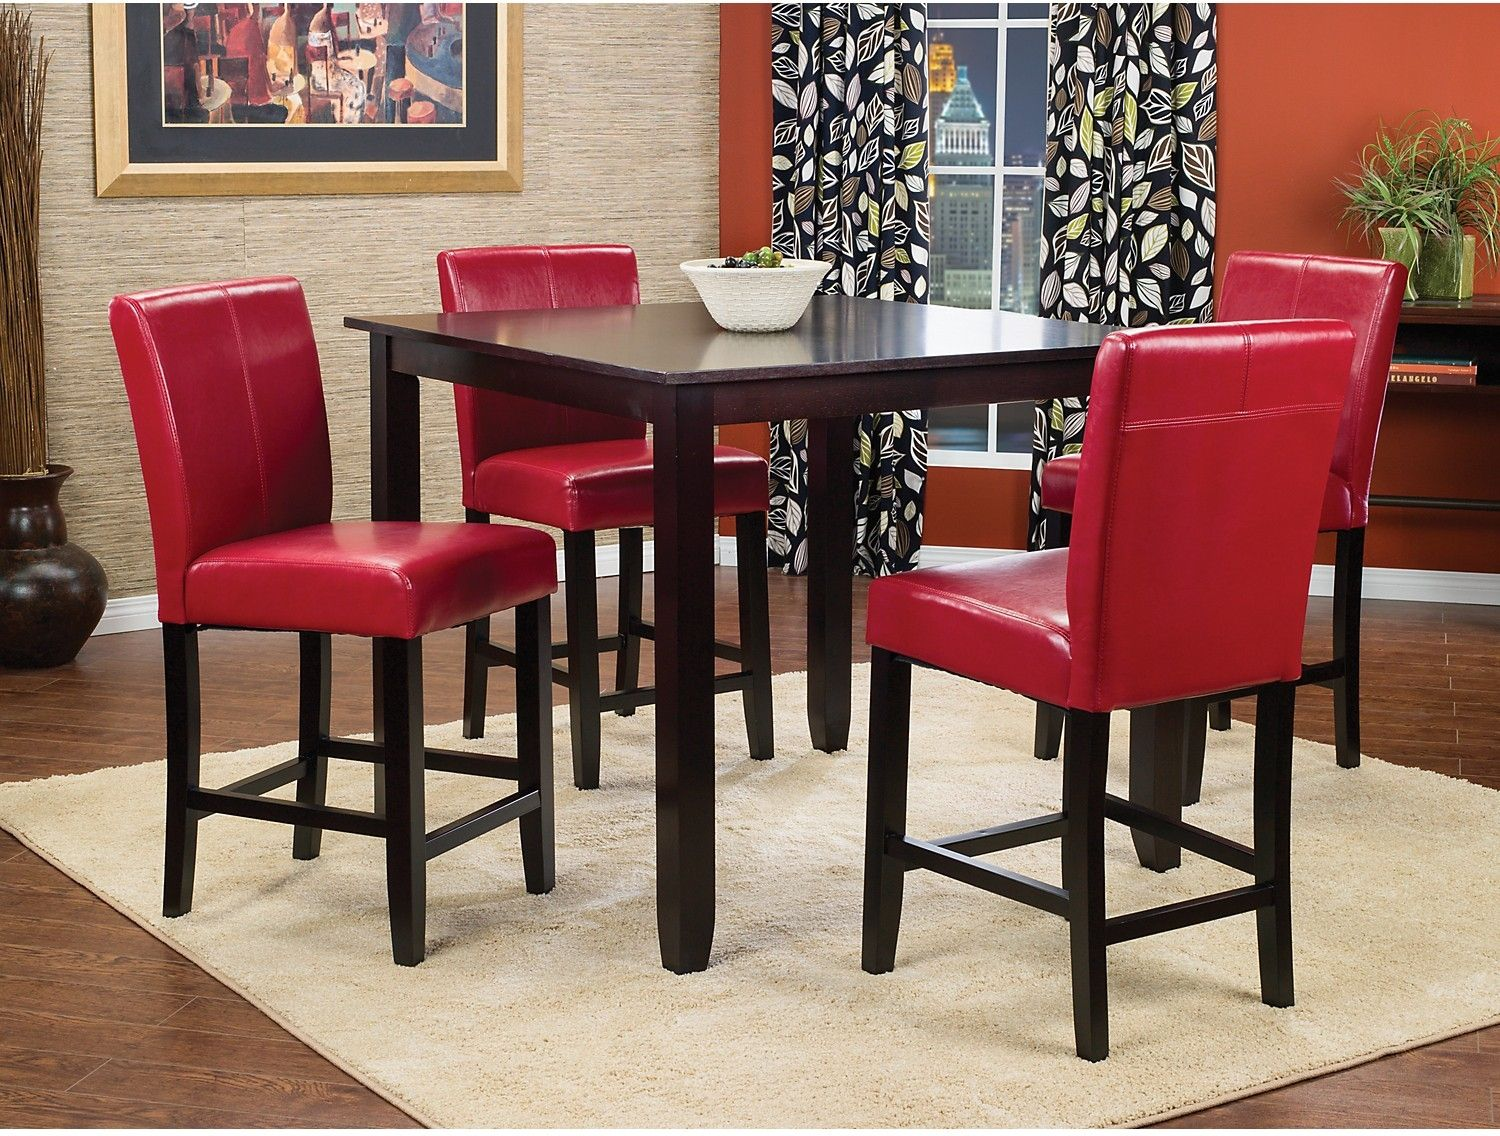 counter height kitchen chairs Furniture Nicole 5 Piece Counter Height Dining